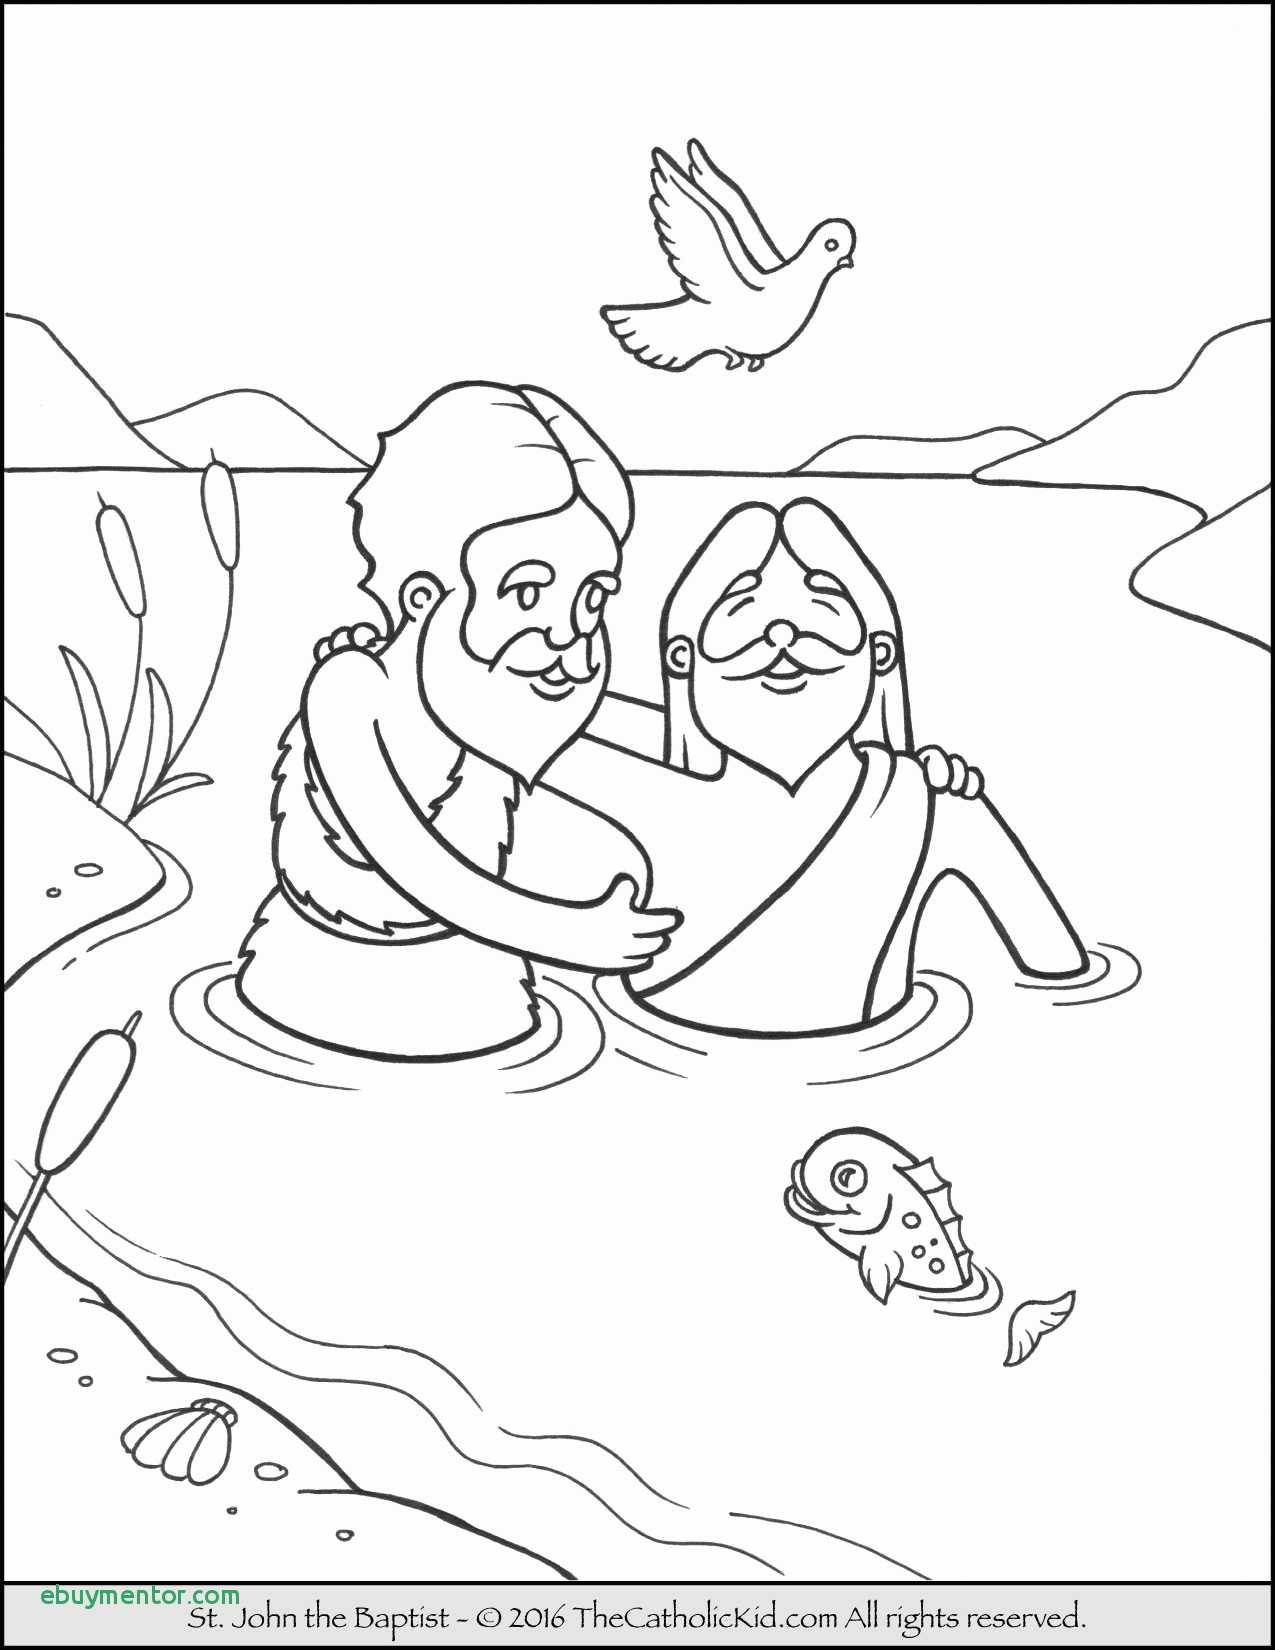 26 Jesus Coloring Pages for Preschoolers Download - Coloring Sheets